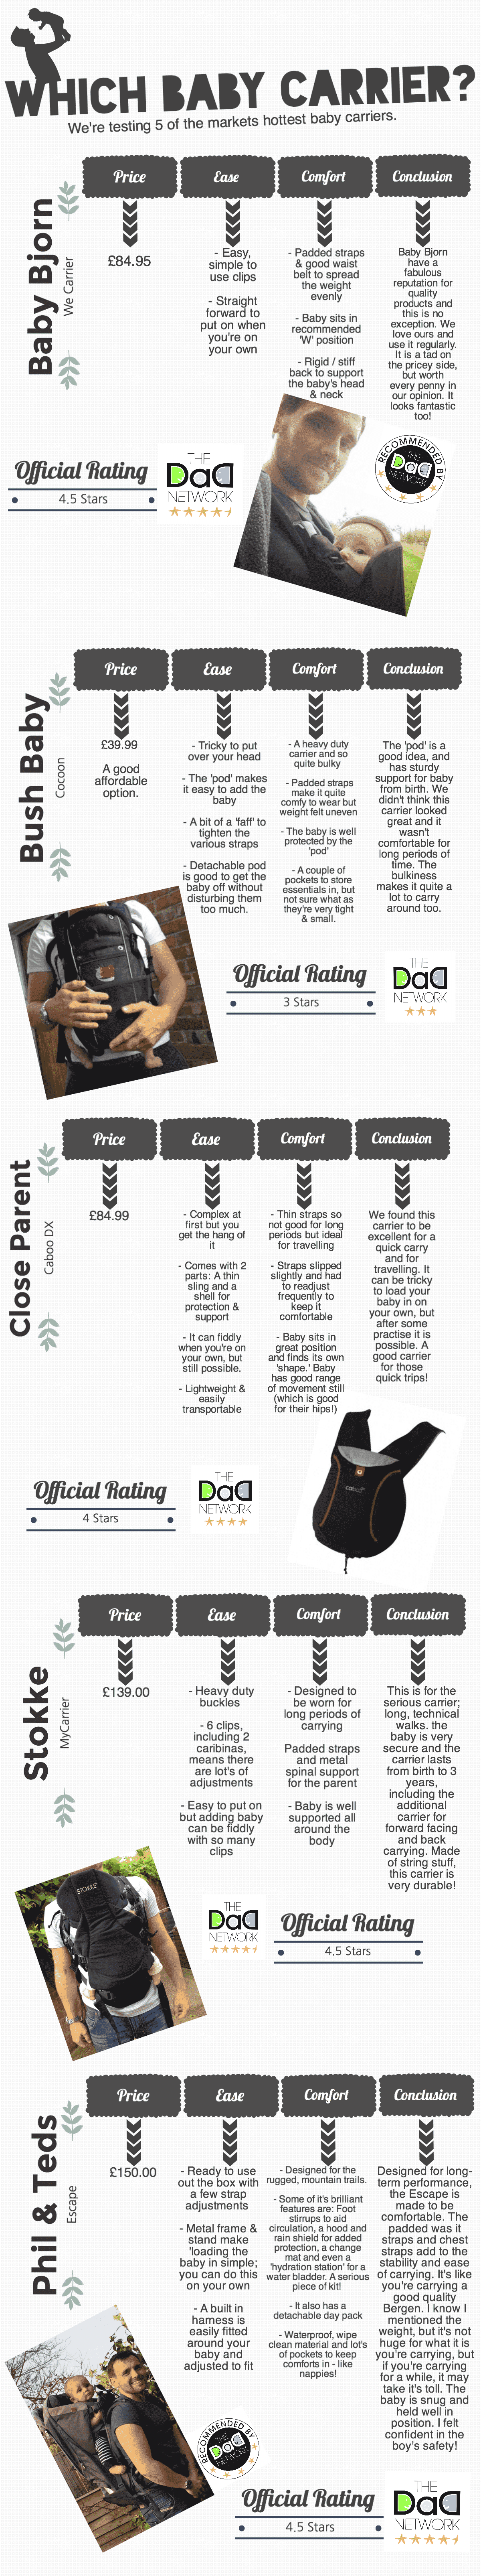 Best Baby Carrier - 5 Carriers Compared, Baby Carrier%, product-review, new-dad%